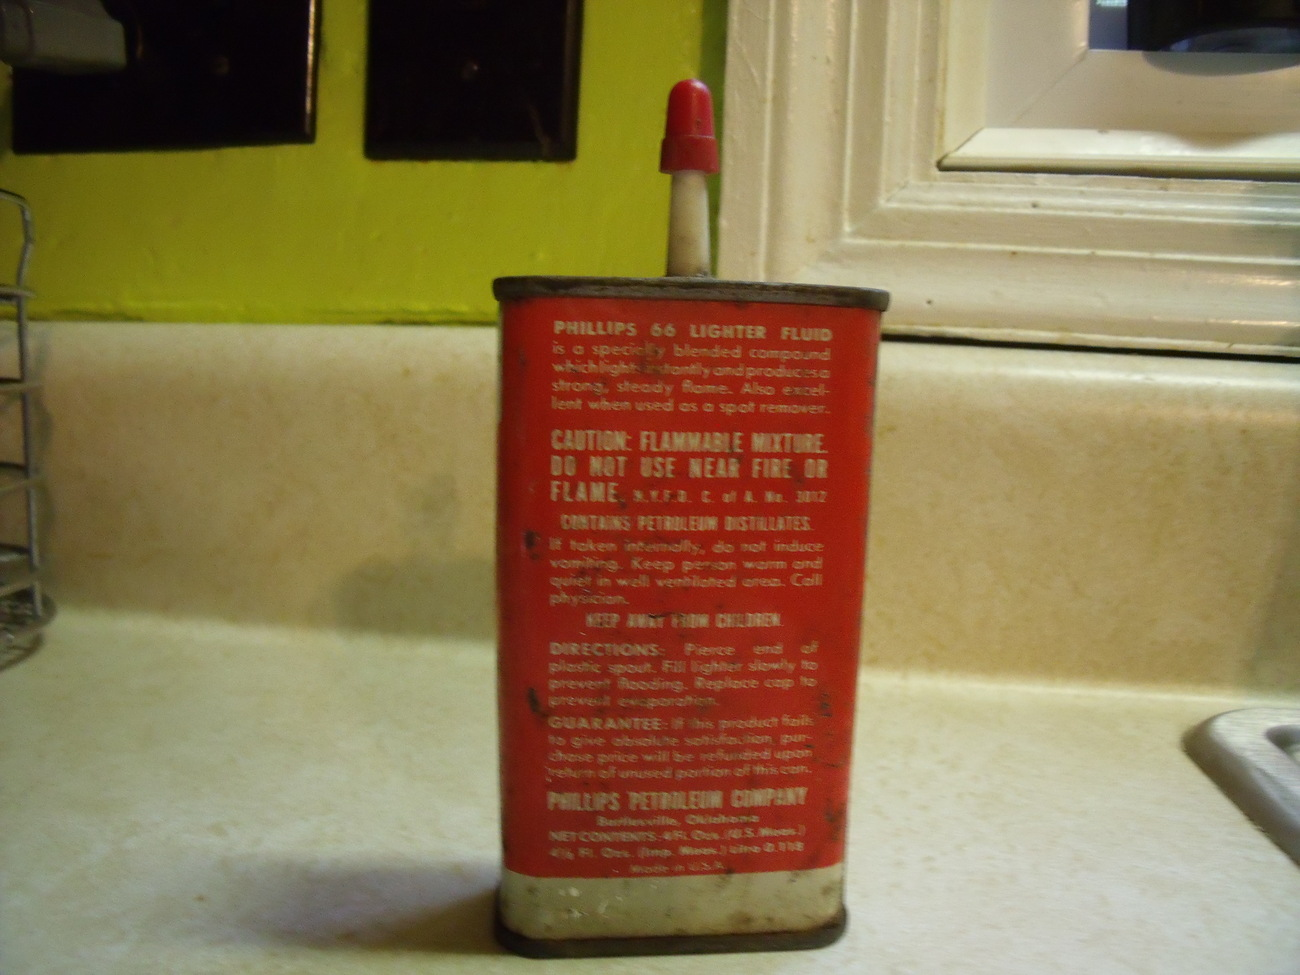 Phillips 66 Lighter Fluid Tin Vintage about 1968